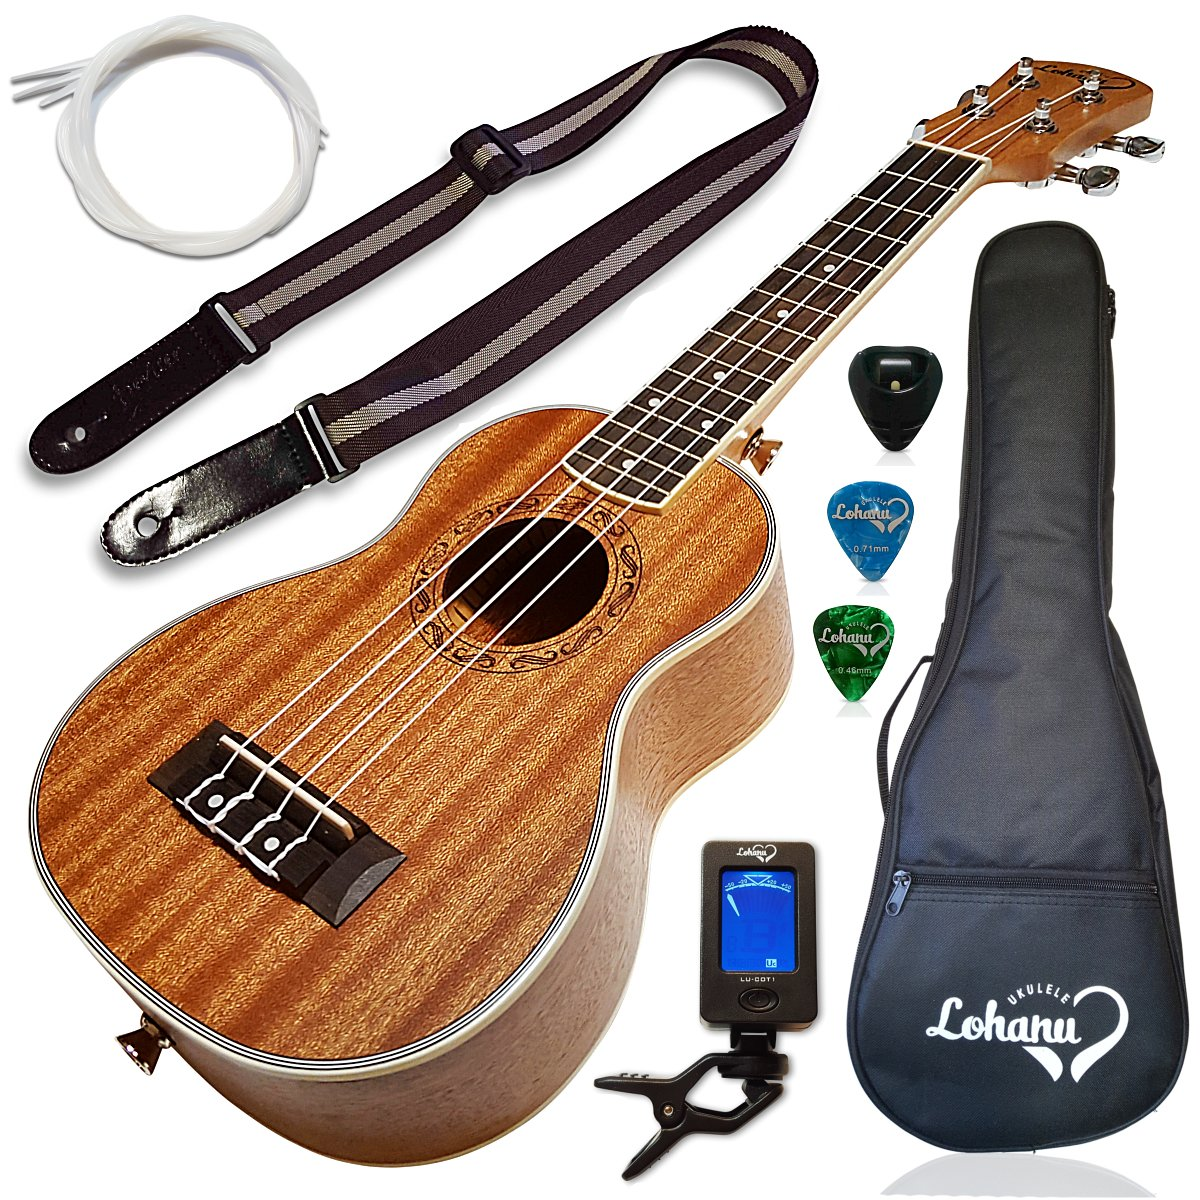 Ukulele Tenor Size Bundle From Lohanu (LU-T) 2 Strap Pins Installed FREE Uke Strap Case Tuner 2 Picks A Pick Holder Aquila Strings Installed Free Video Lessons BEST UKULELE BUNDLE DEAL Purchase Today! LU-T Bundle